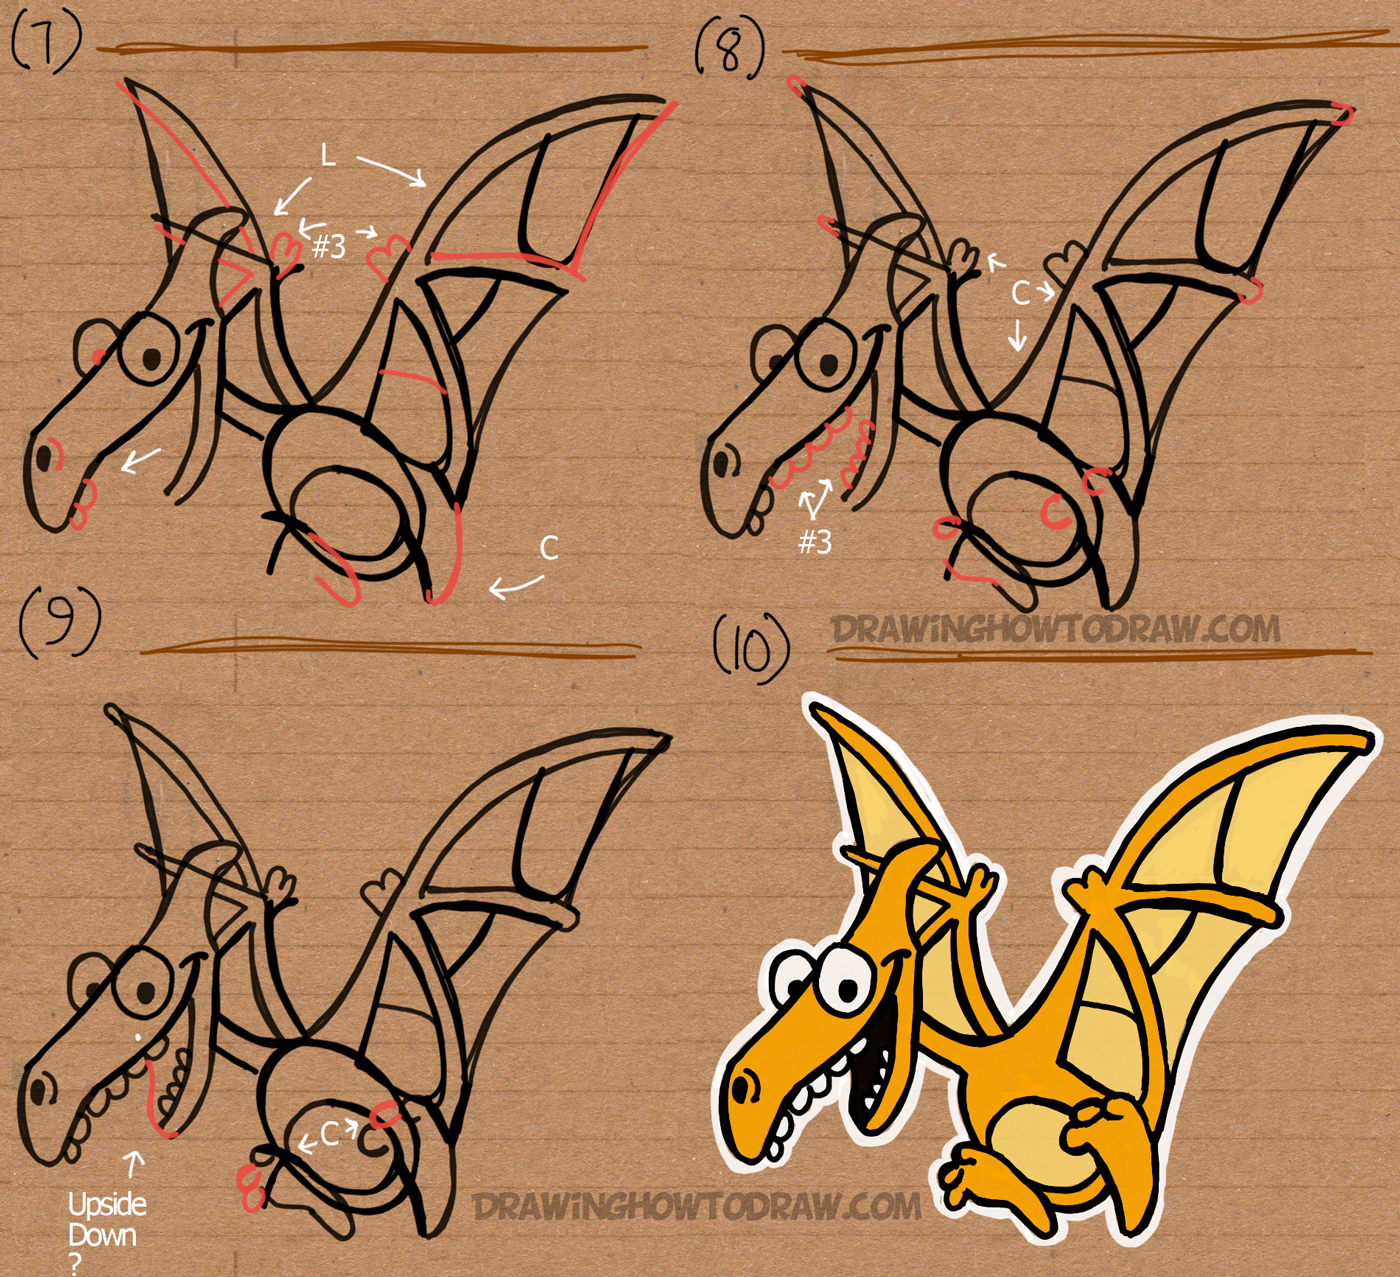 How to Draw Cartoon Pterodactyls Using the Word Step by Step Drawing Tutorial